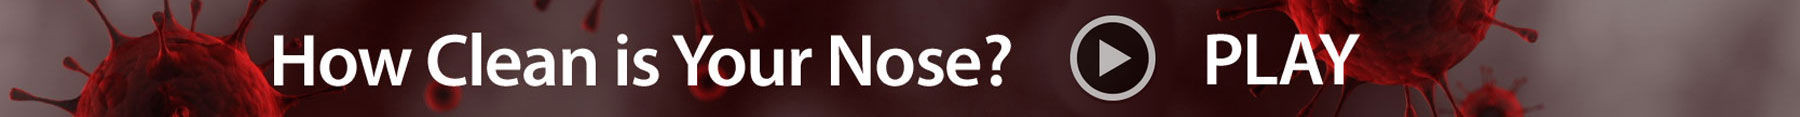 How Clean is Your Nose Video